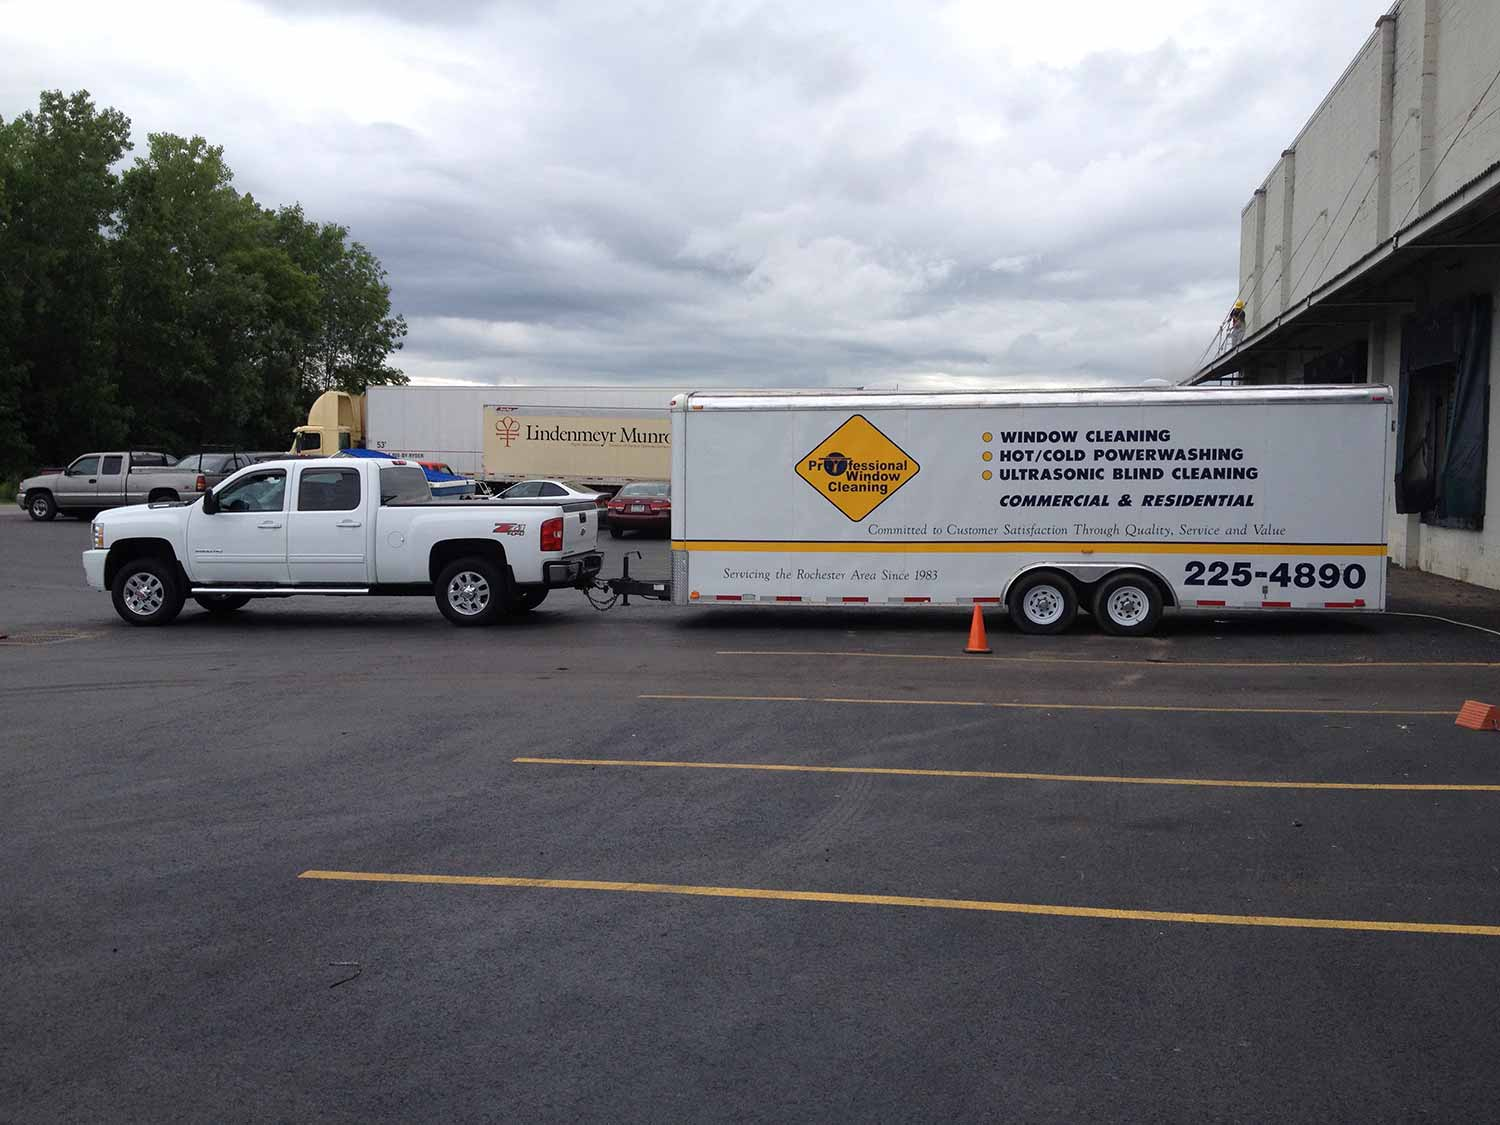 Truck and equipment trailer side view